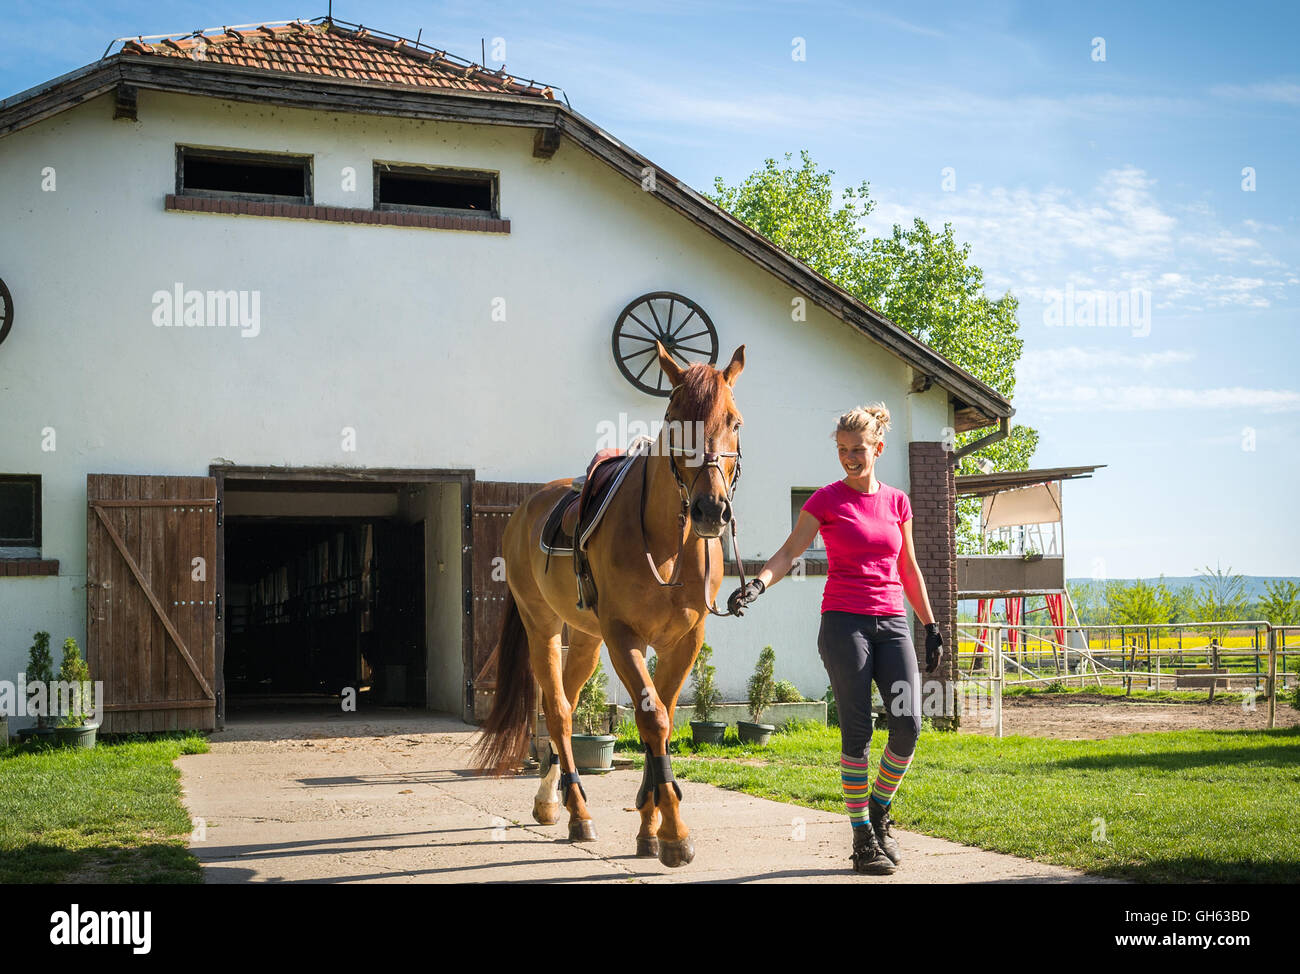 girl with horse in stable - Stock Image